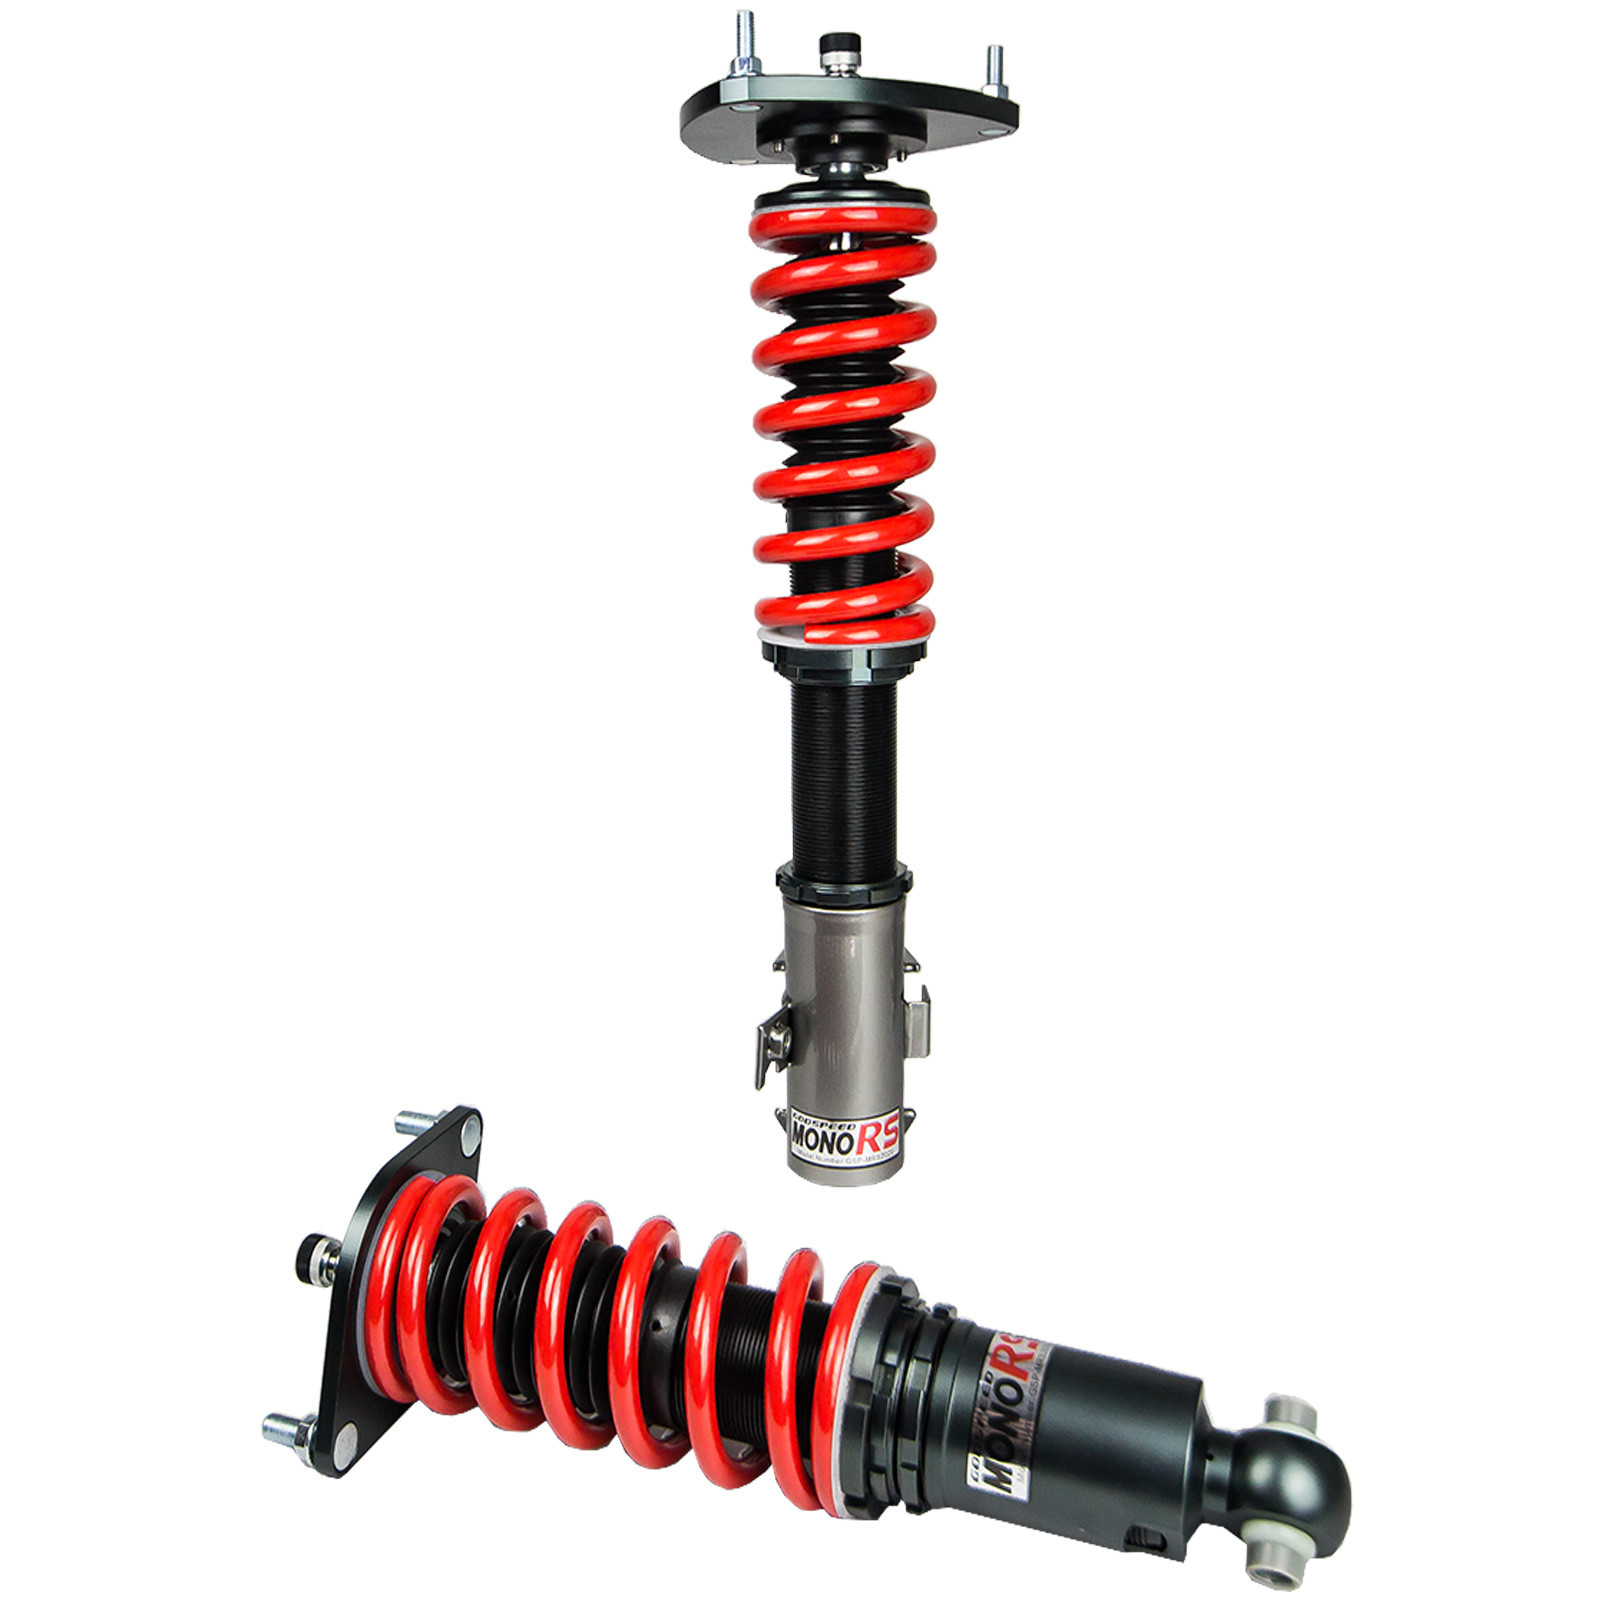 Subaru Forester (SH) 08-13 MonoRS Coilovers